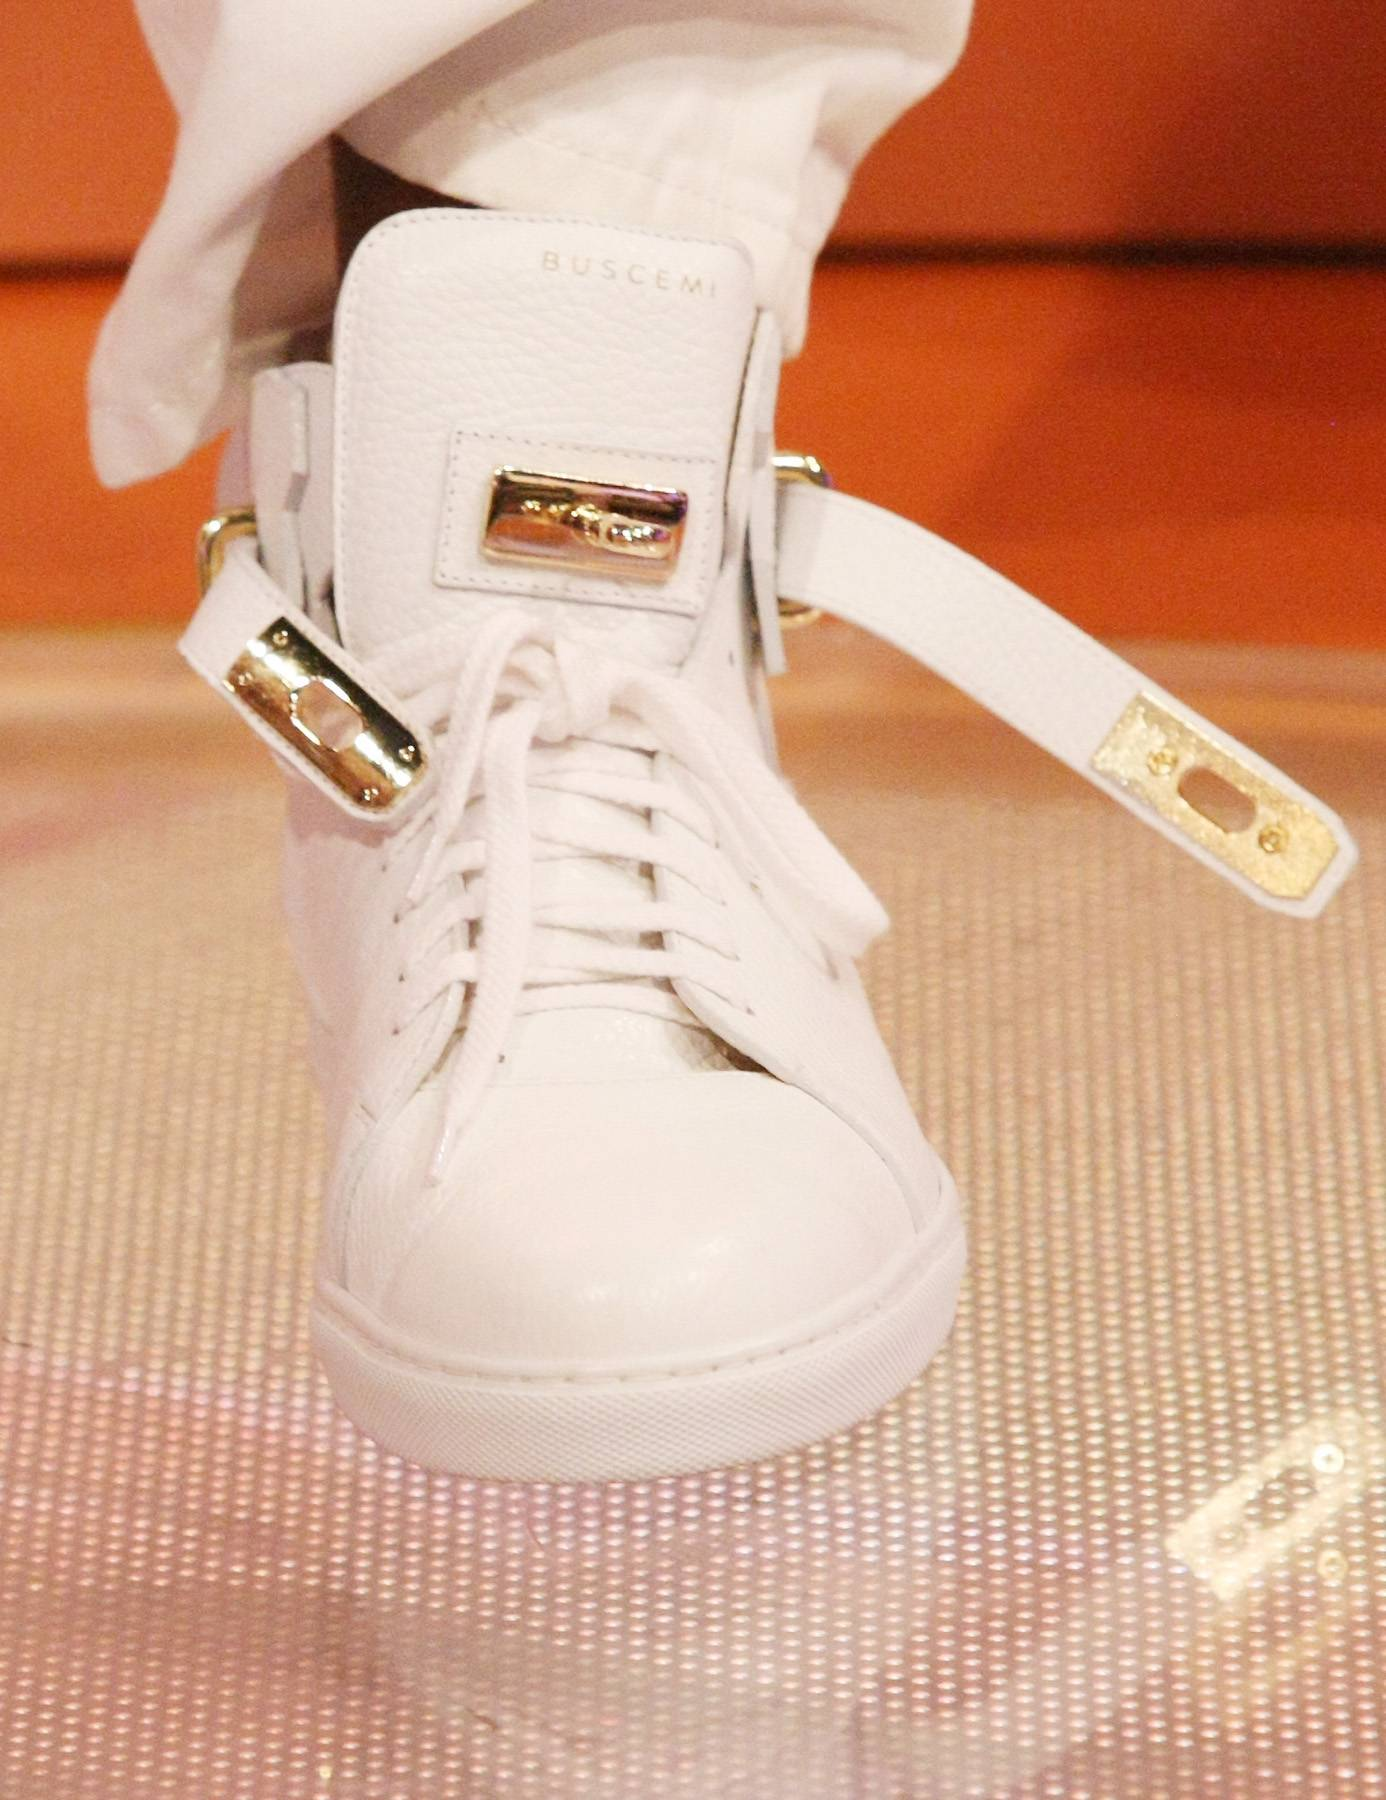 Belts on His Feet? - 2 Chainz' shoes have belts on them. (Photo: Bennett Raglin/BET/Getty Images for BET)